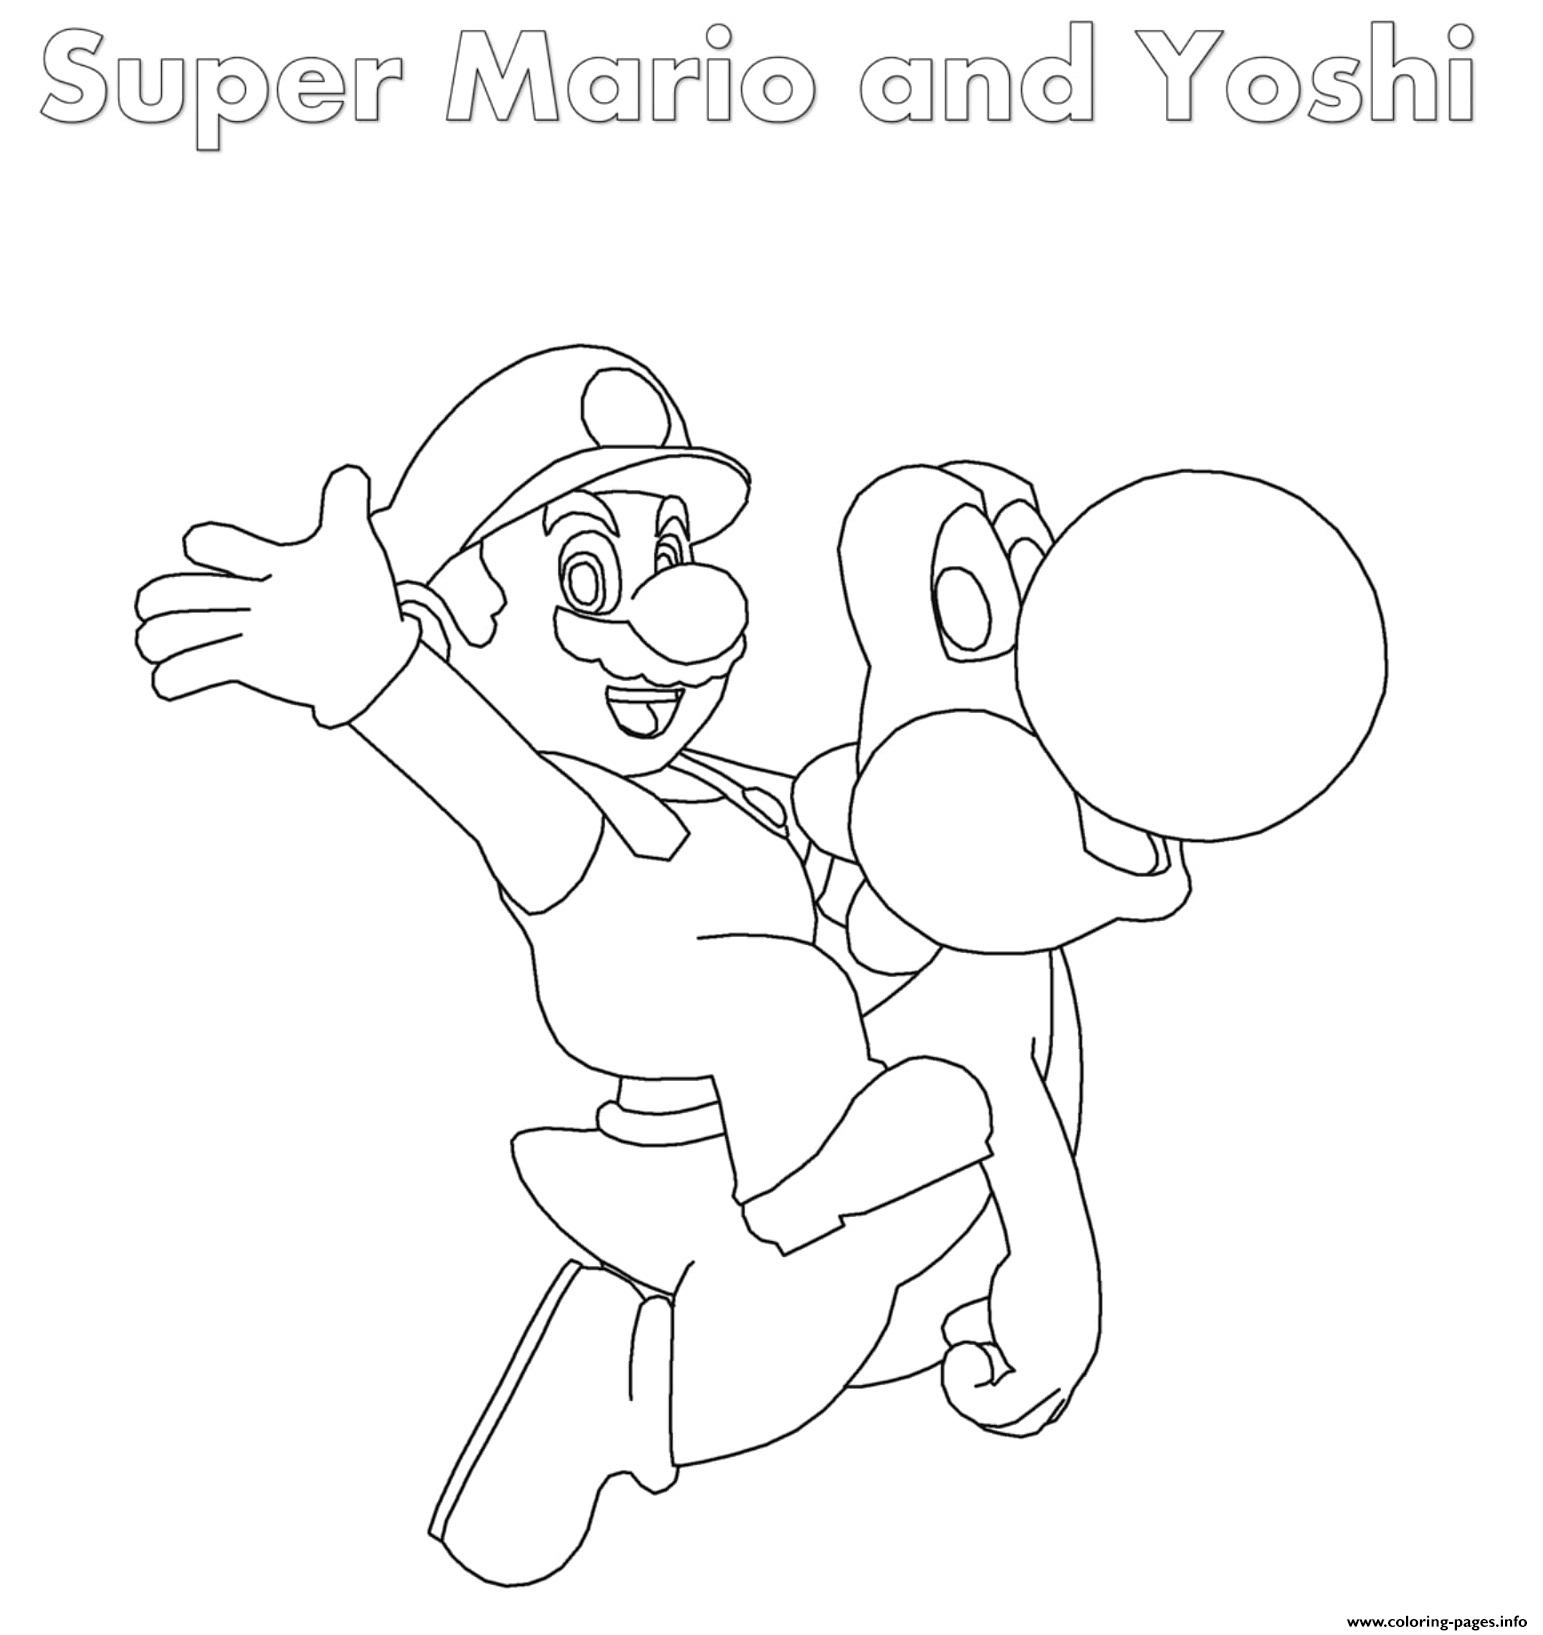 Super Mario And Yoshi Coloring Pages Printable